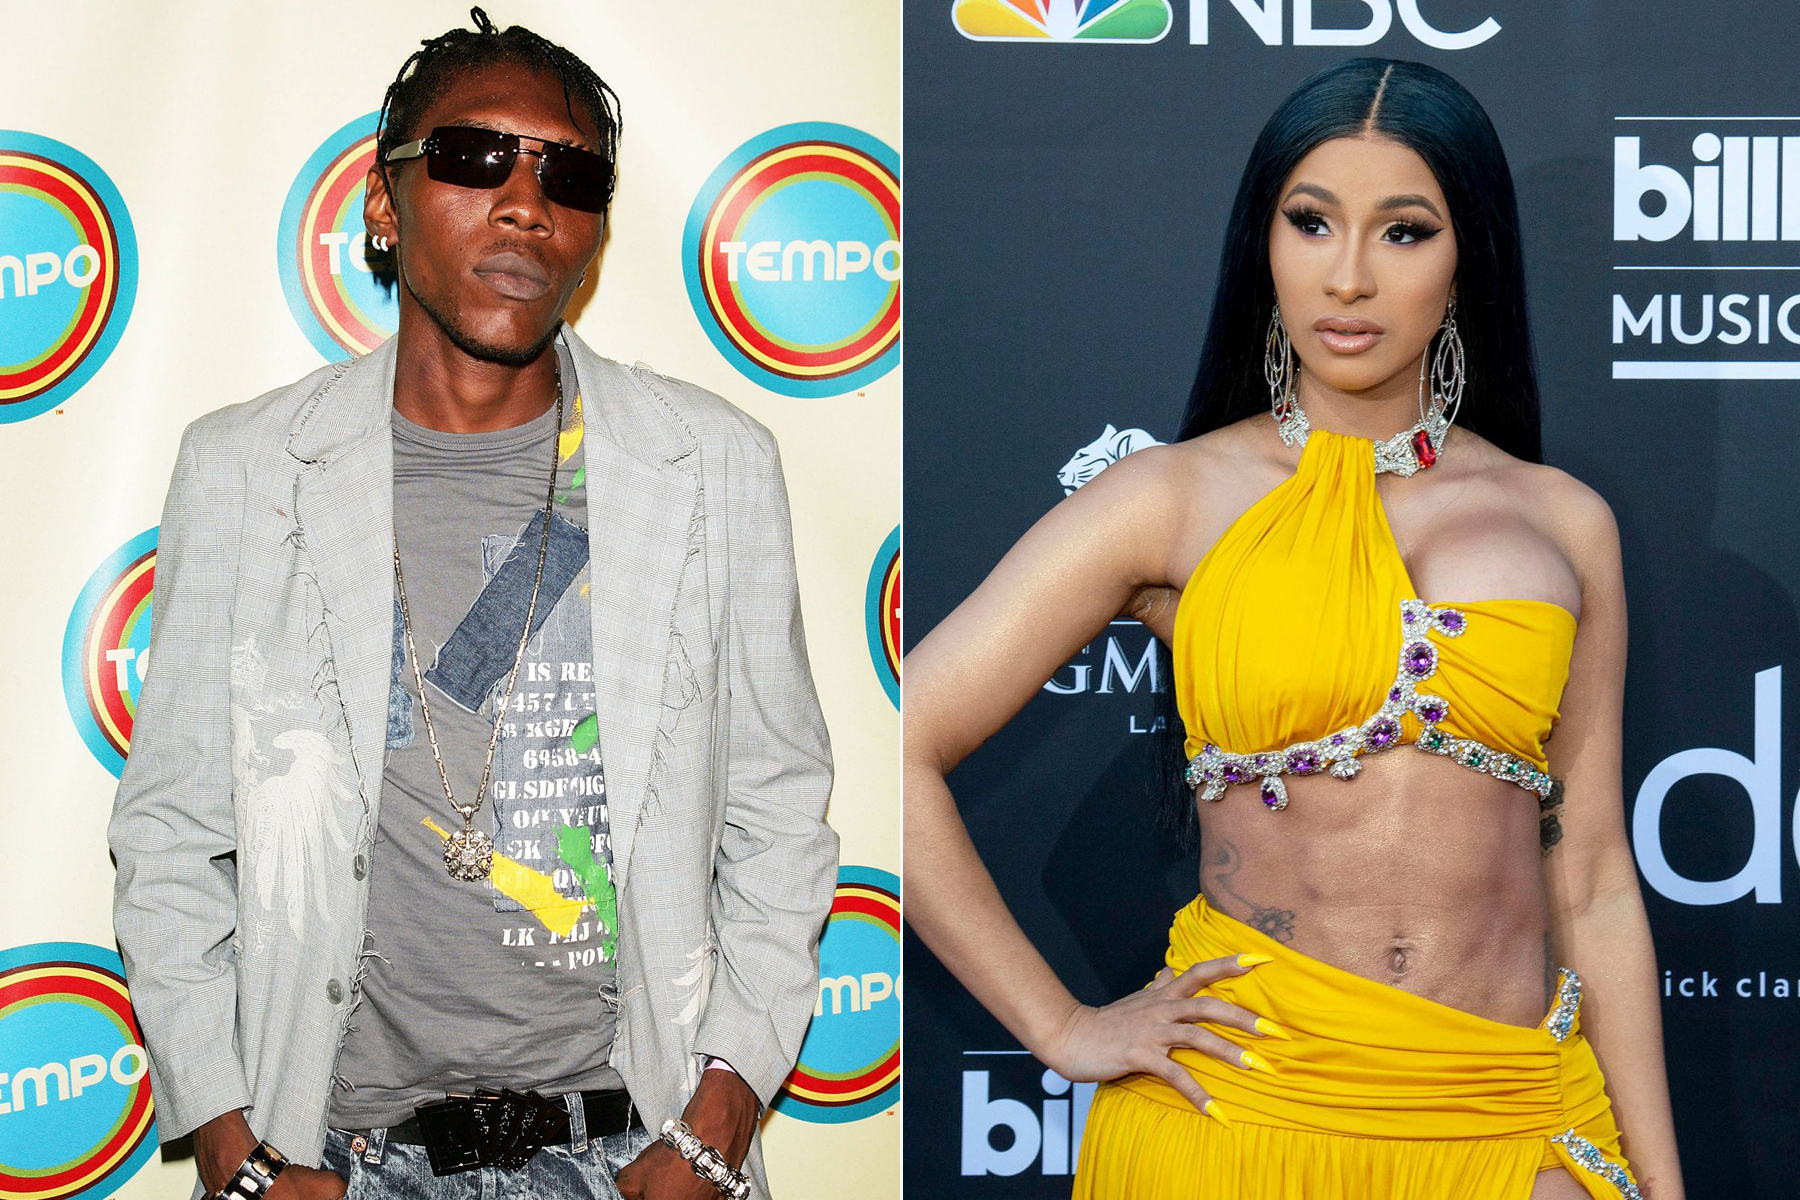 Cardi B Says New Album Will Reveal Relationship Issues With Offset